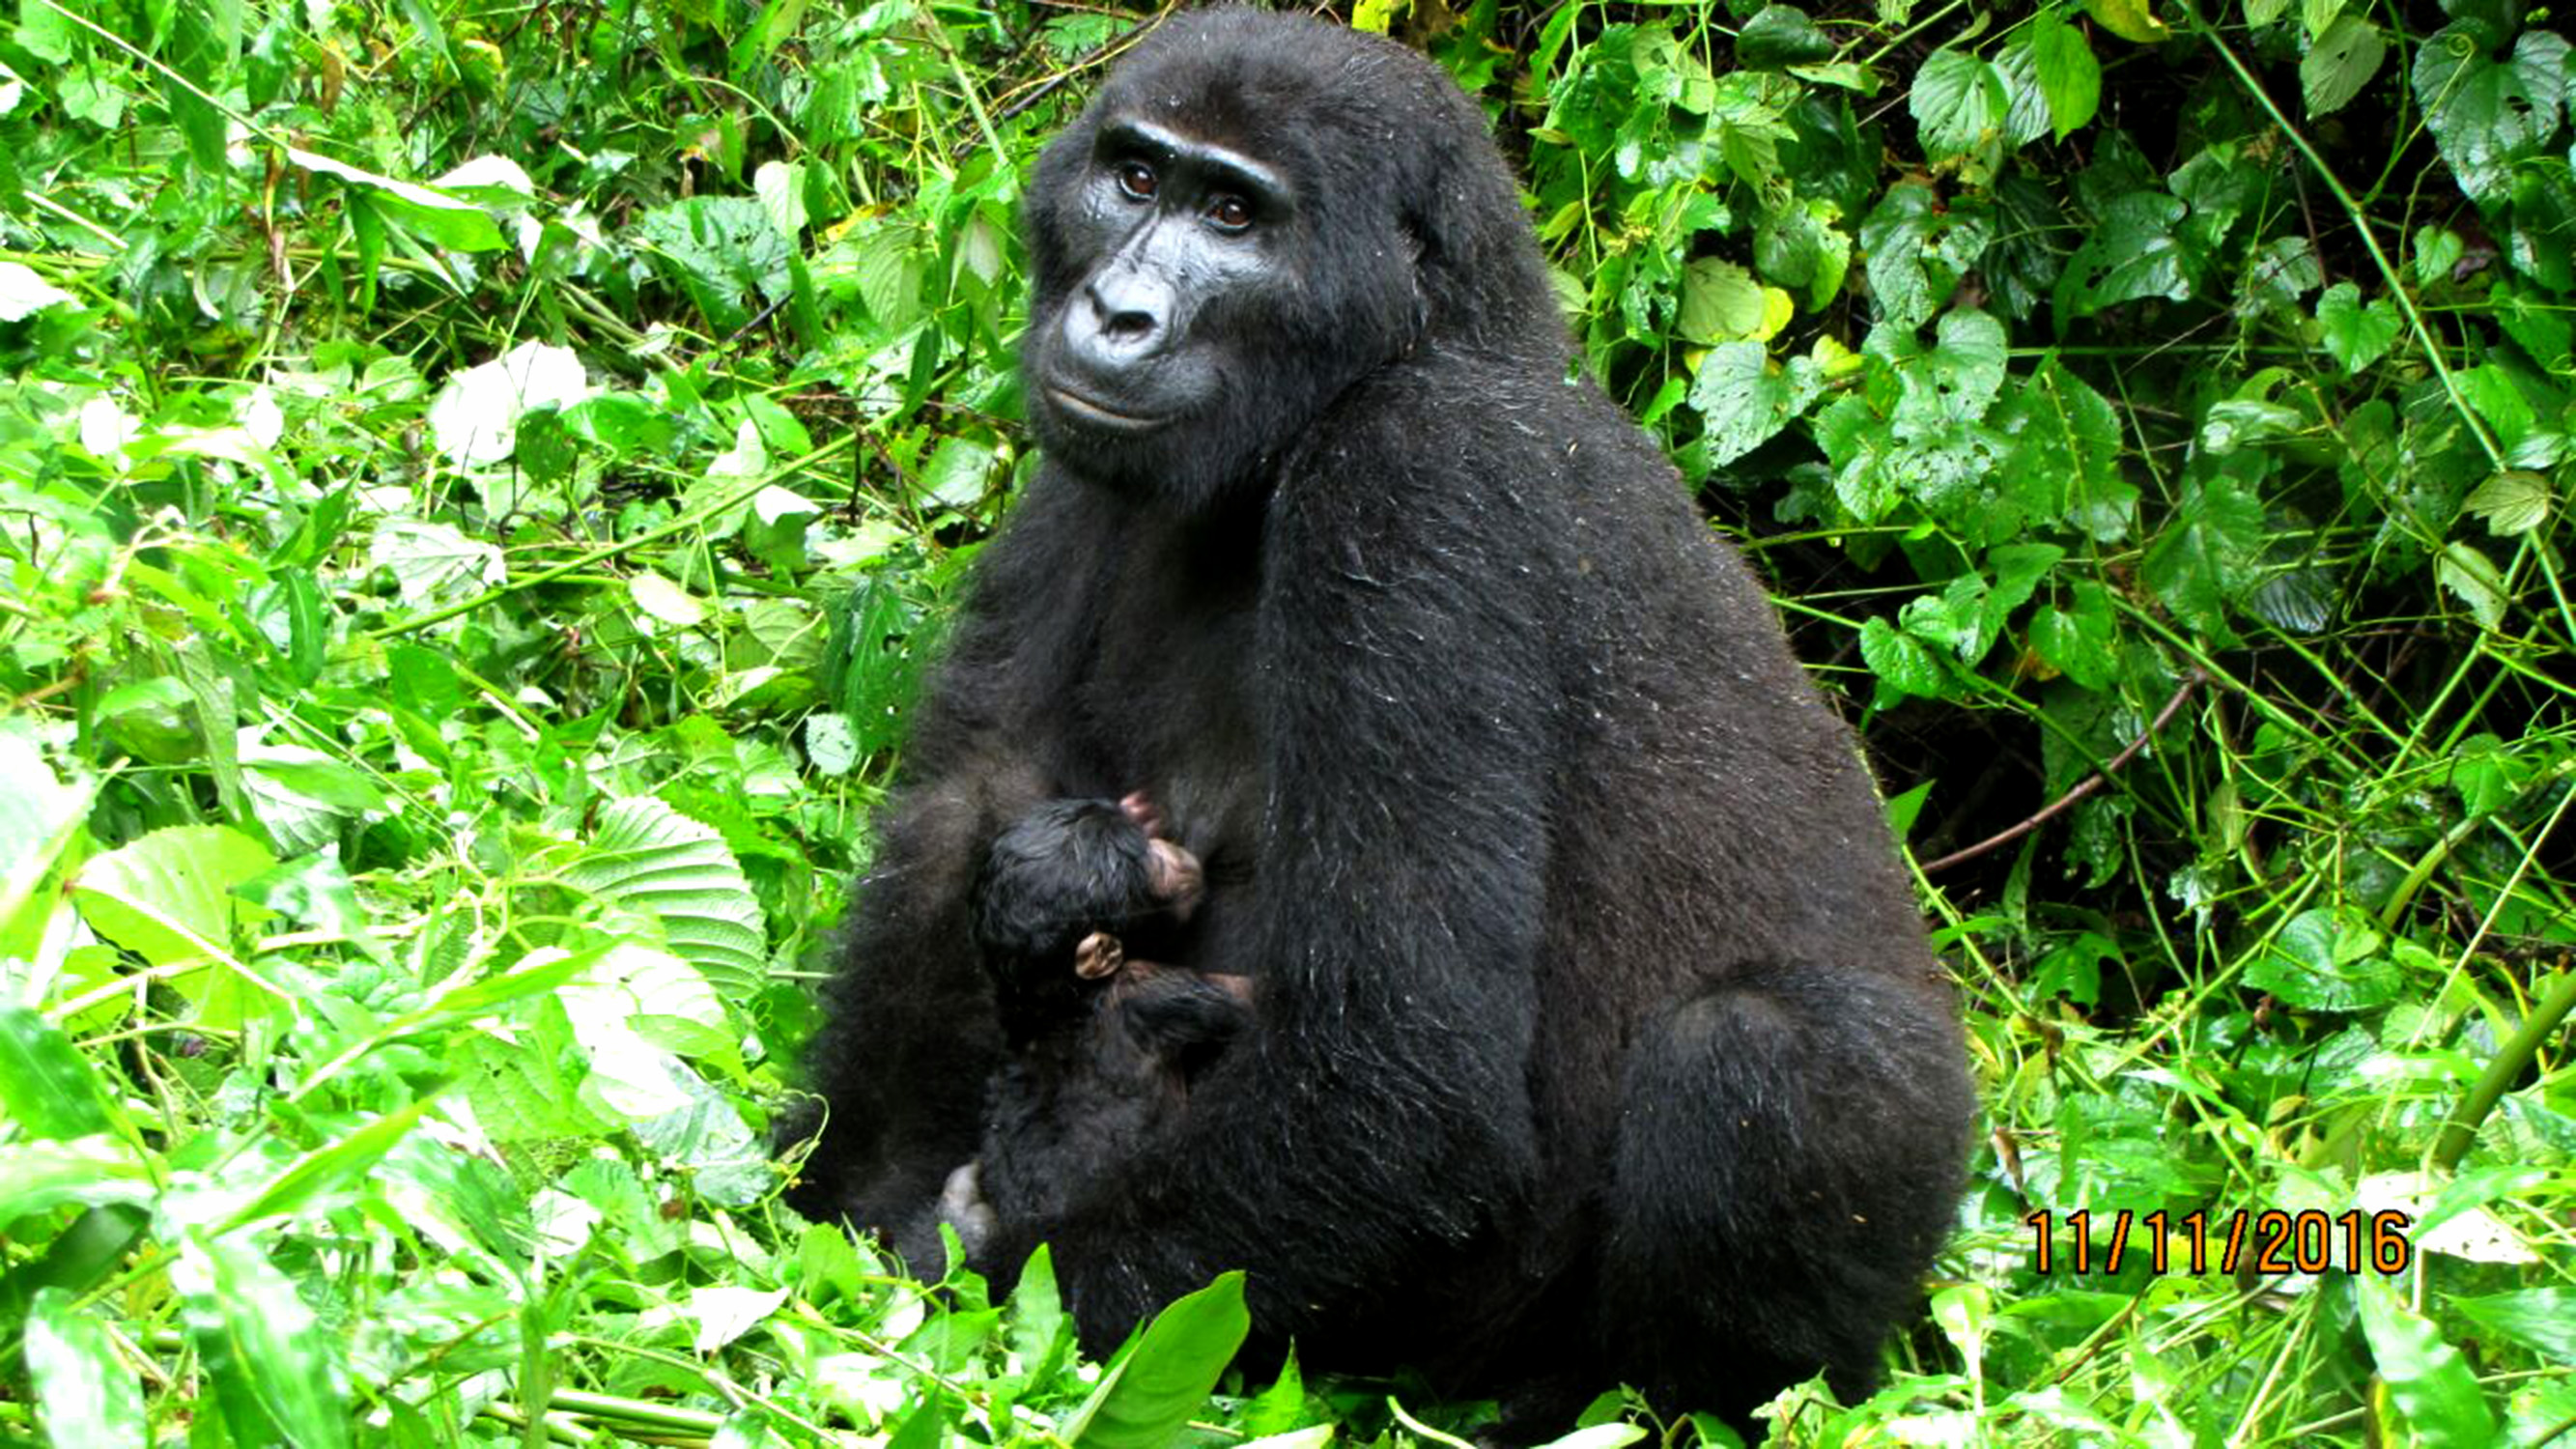 baby-gorilla-born-2016-11-11-at-bwindi-national-park02